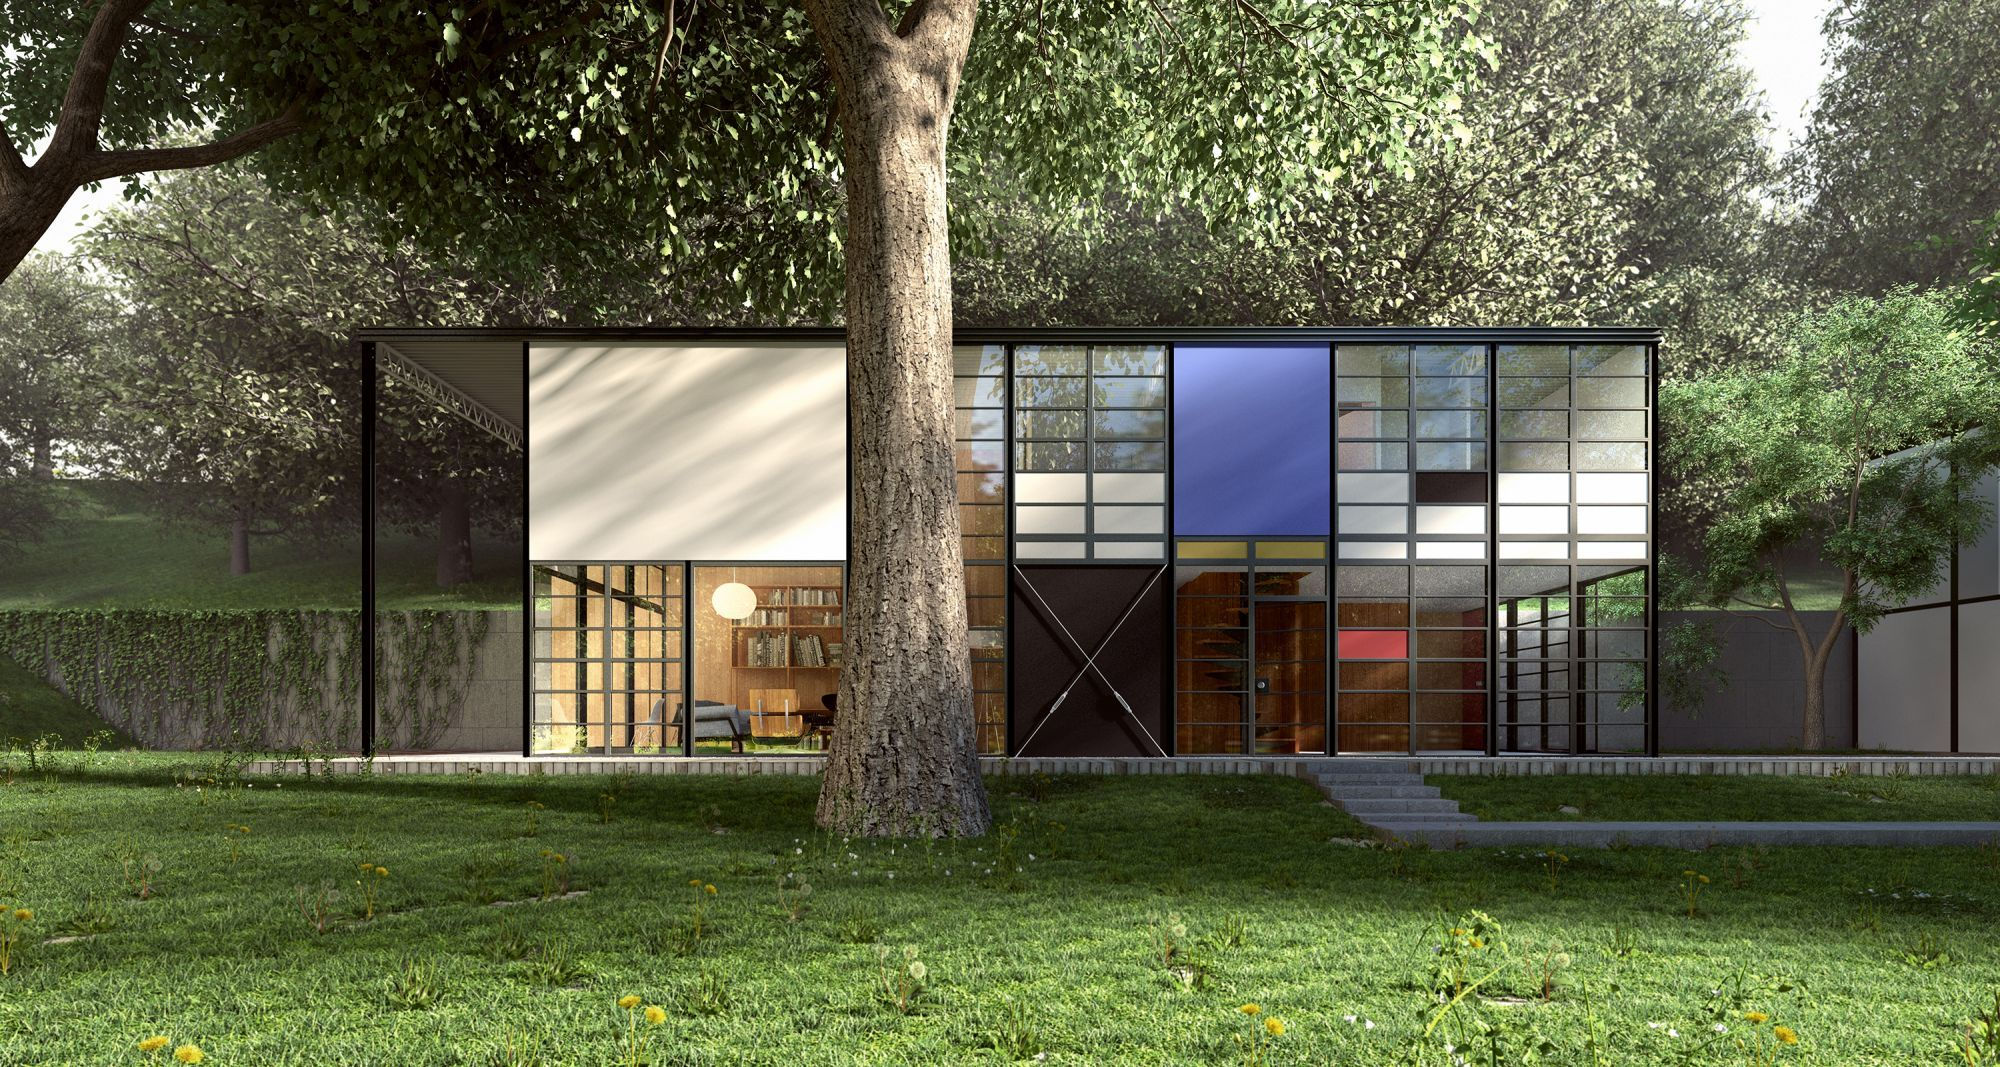 Pin by clarisse silva on A Architecture Eames house